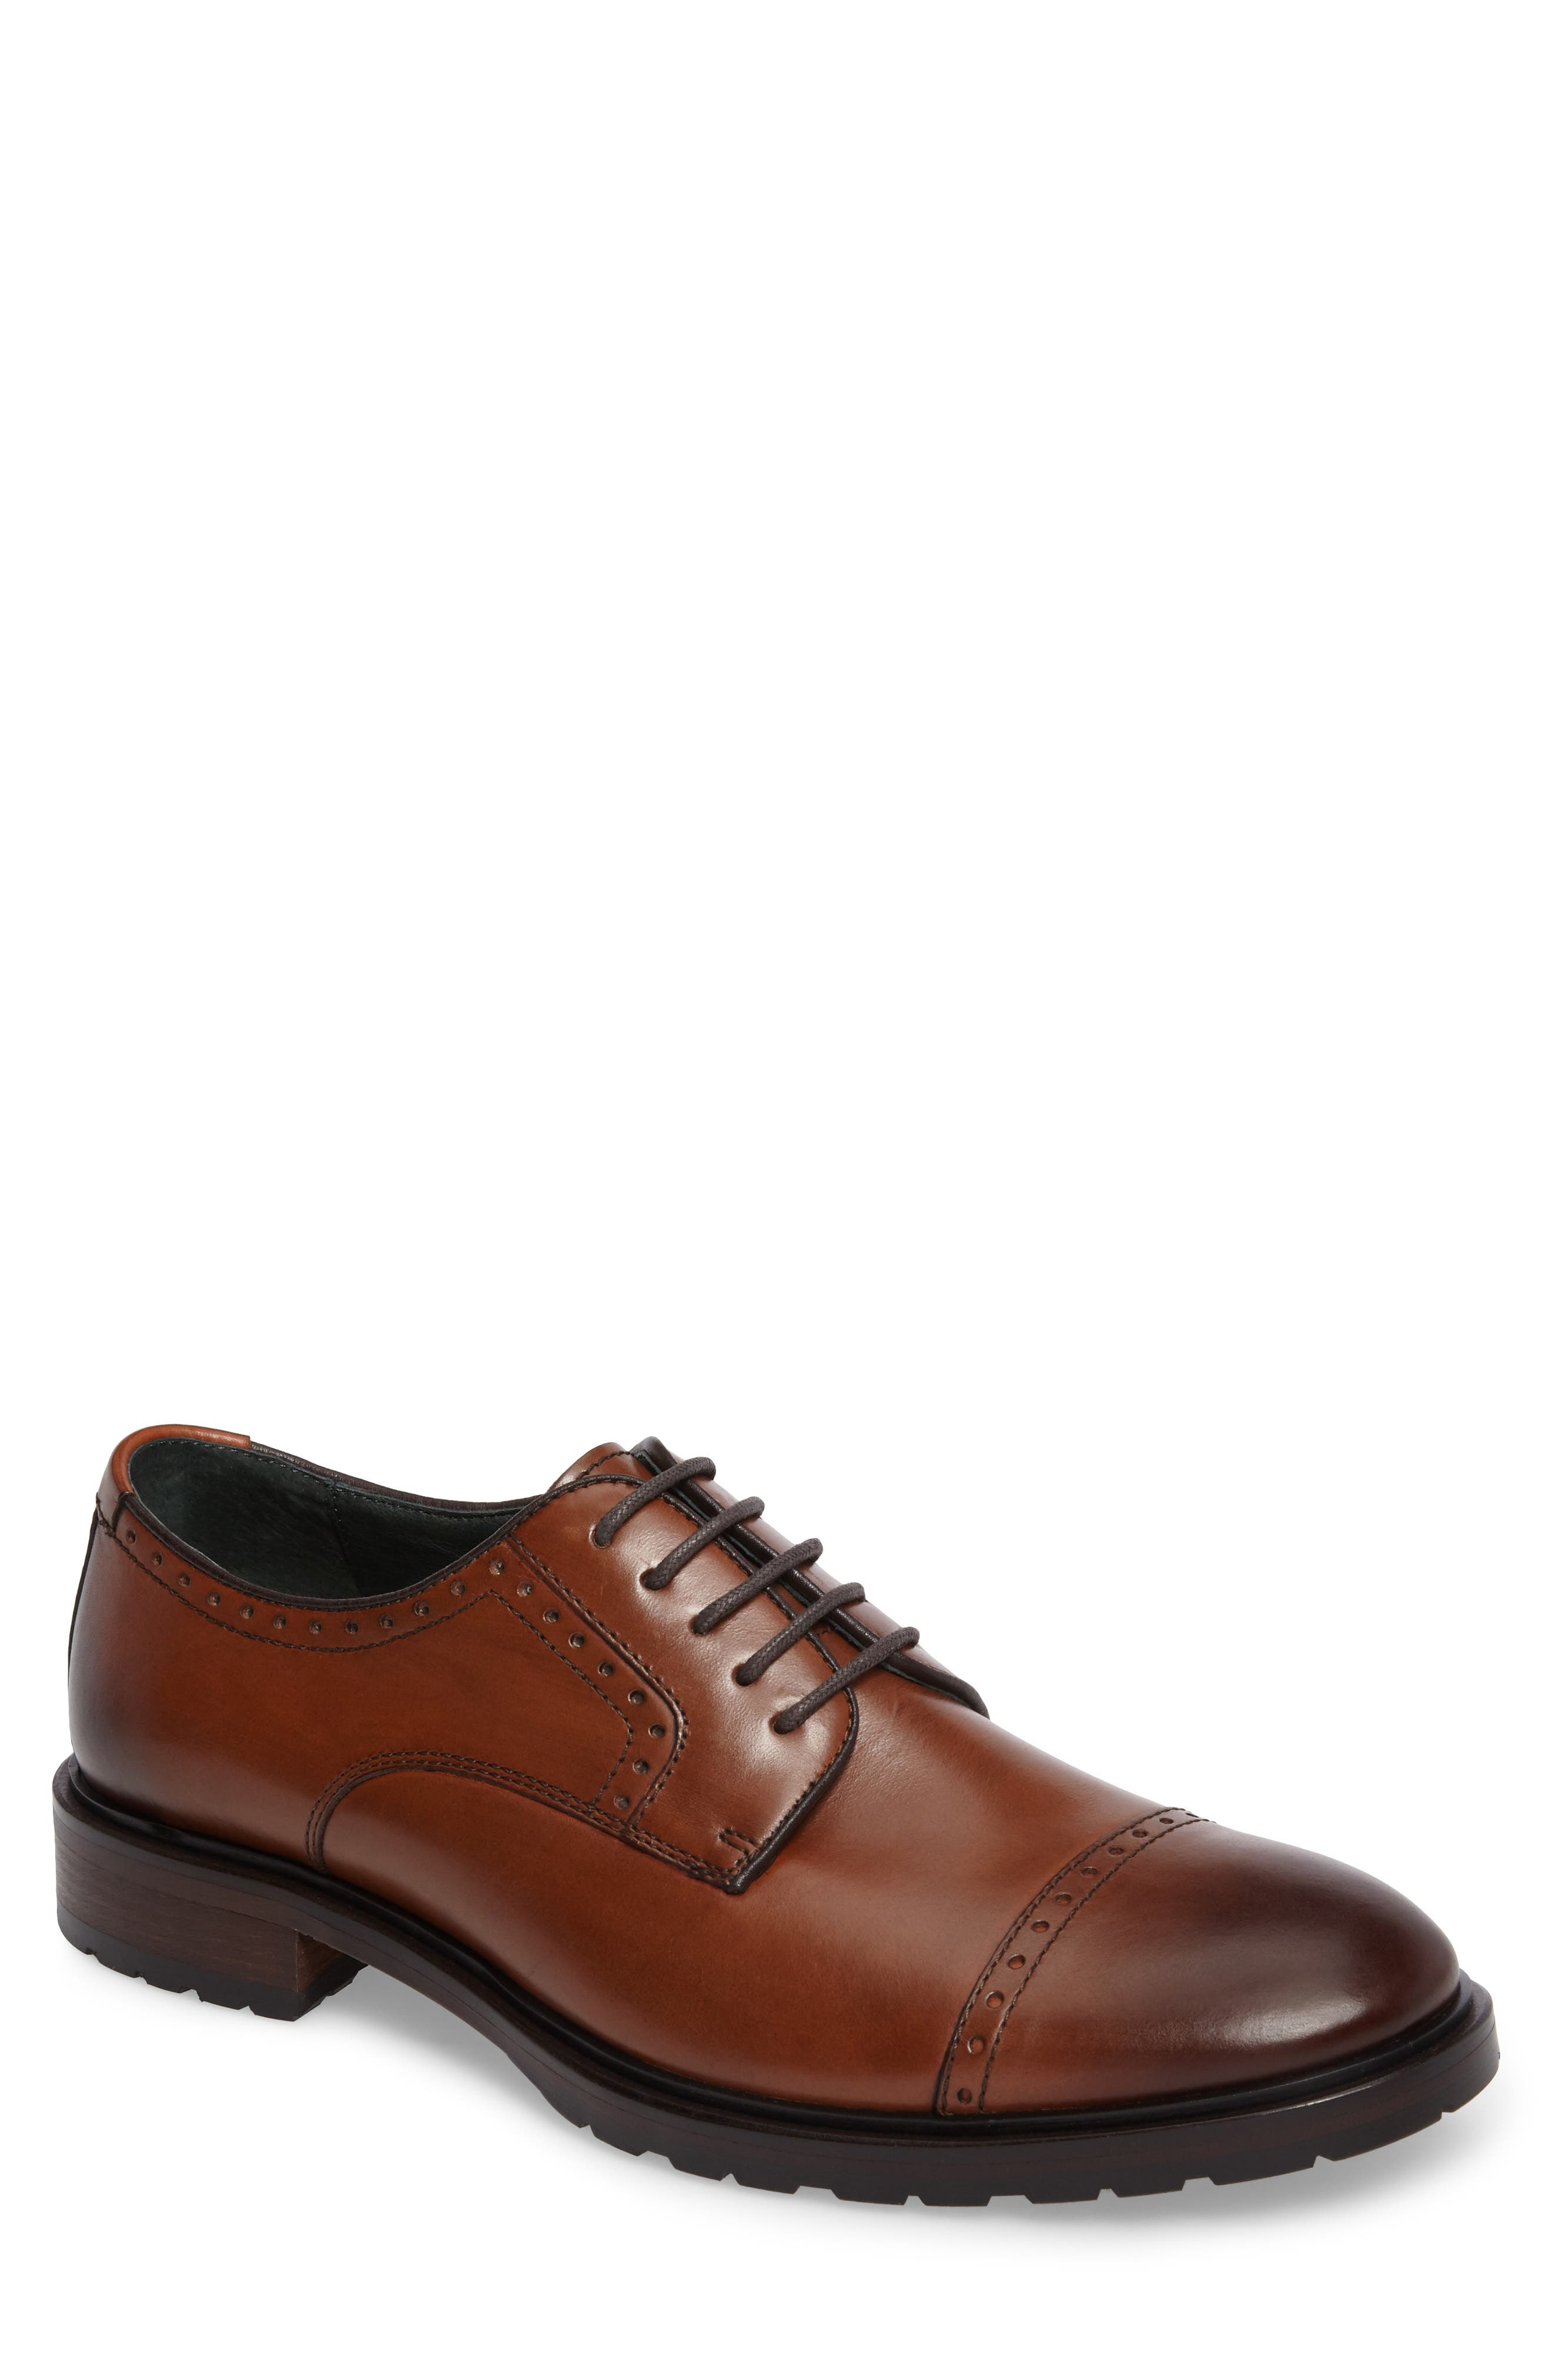 Myles Cap Toe Derby,                             Main thumbnail 1, color,                             211